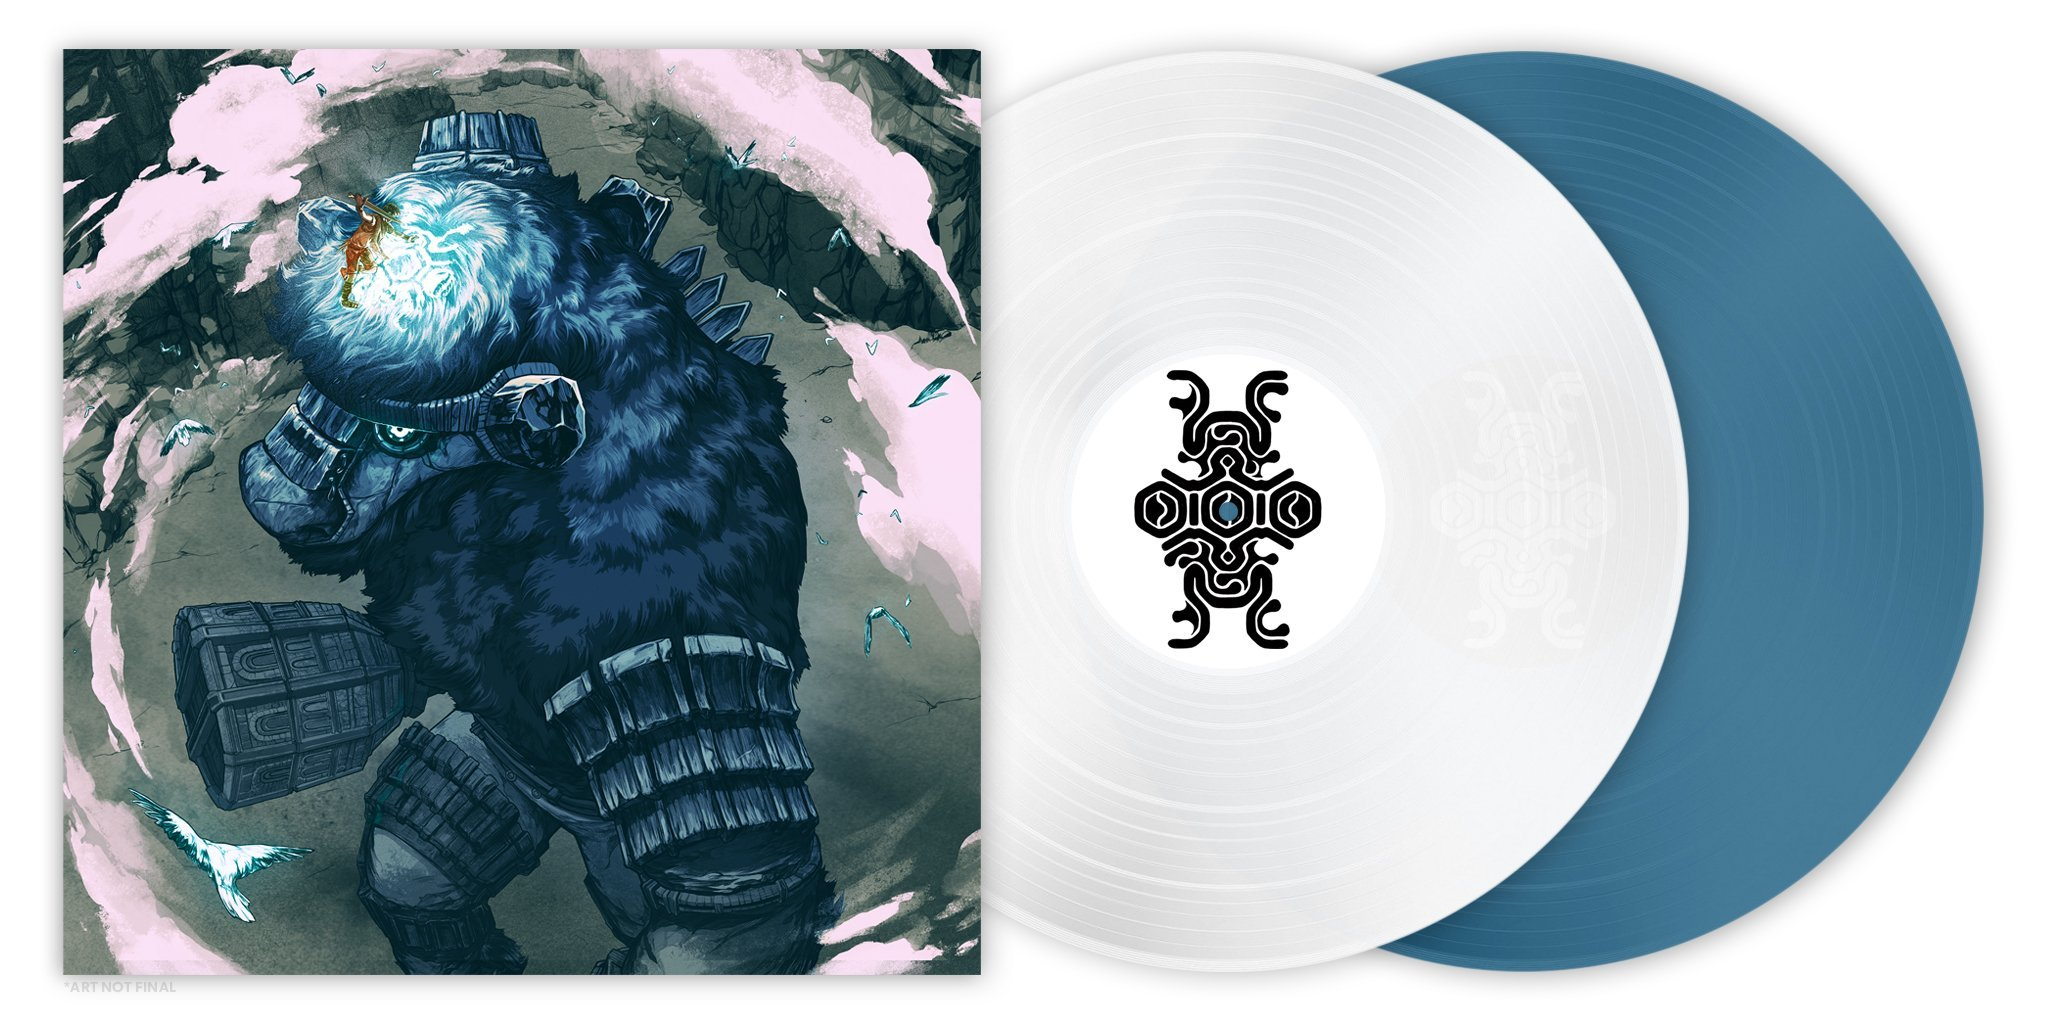 This Shadow Of The Colossus Vinyl Is A Sight To Behold